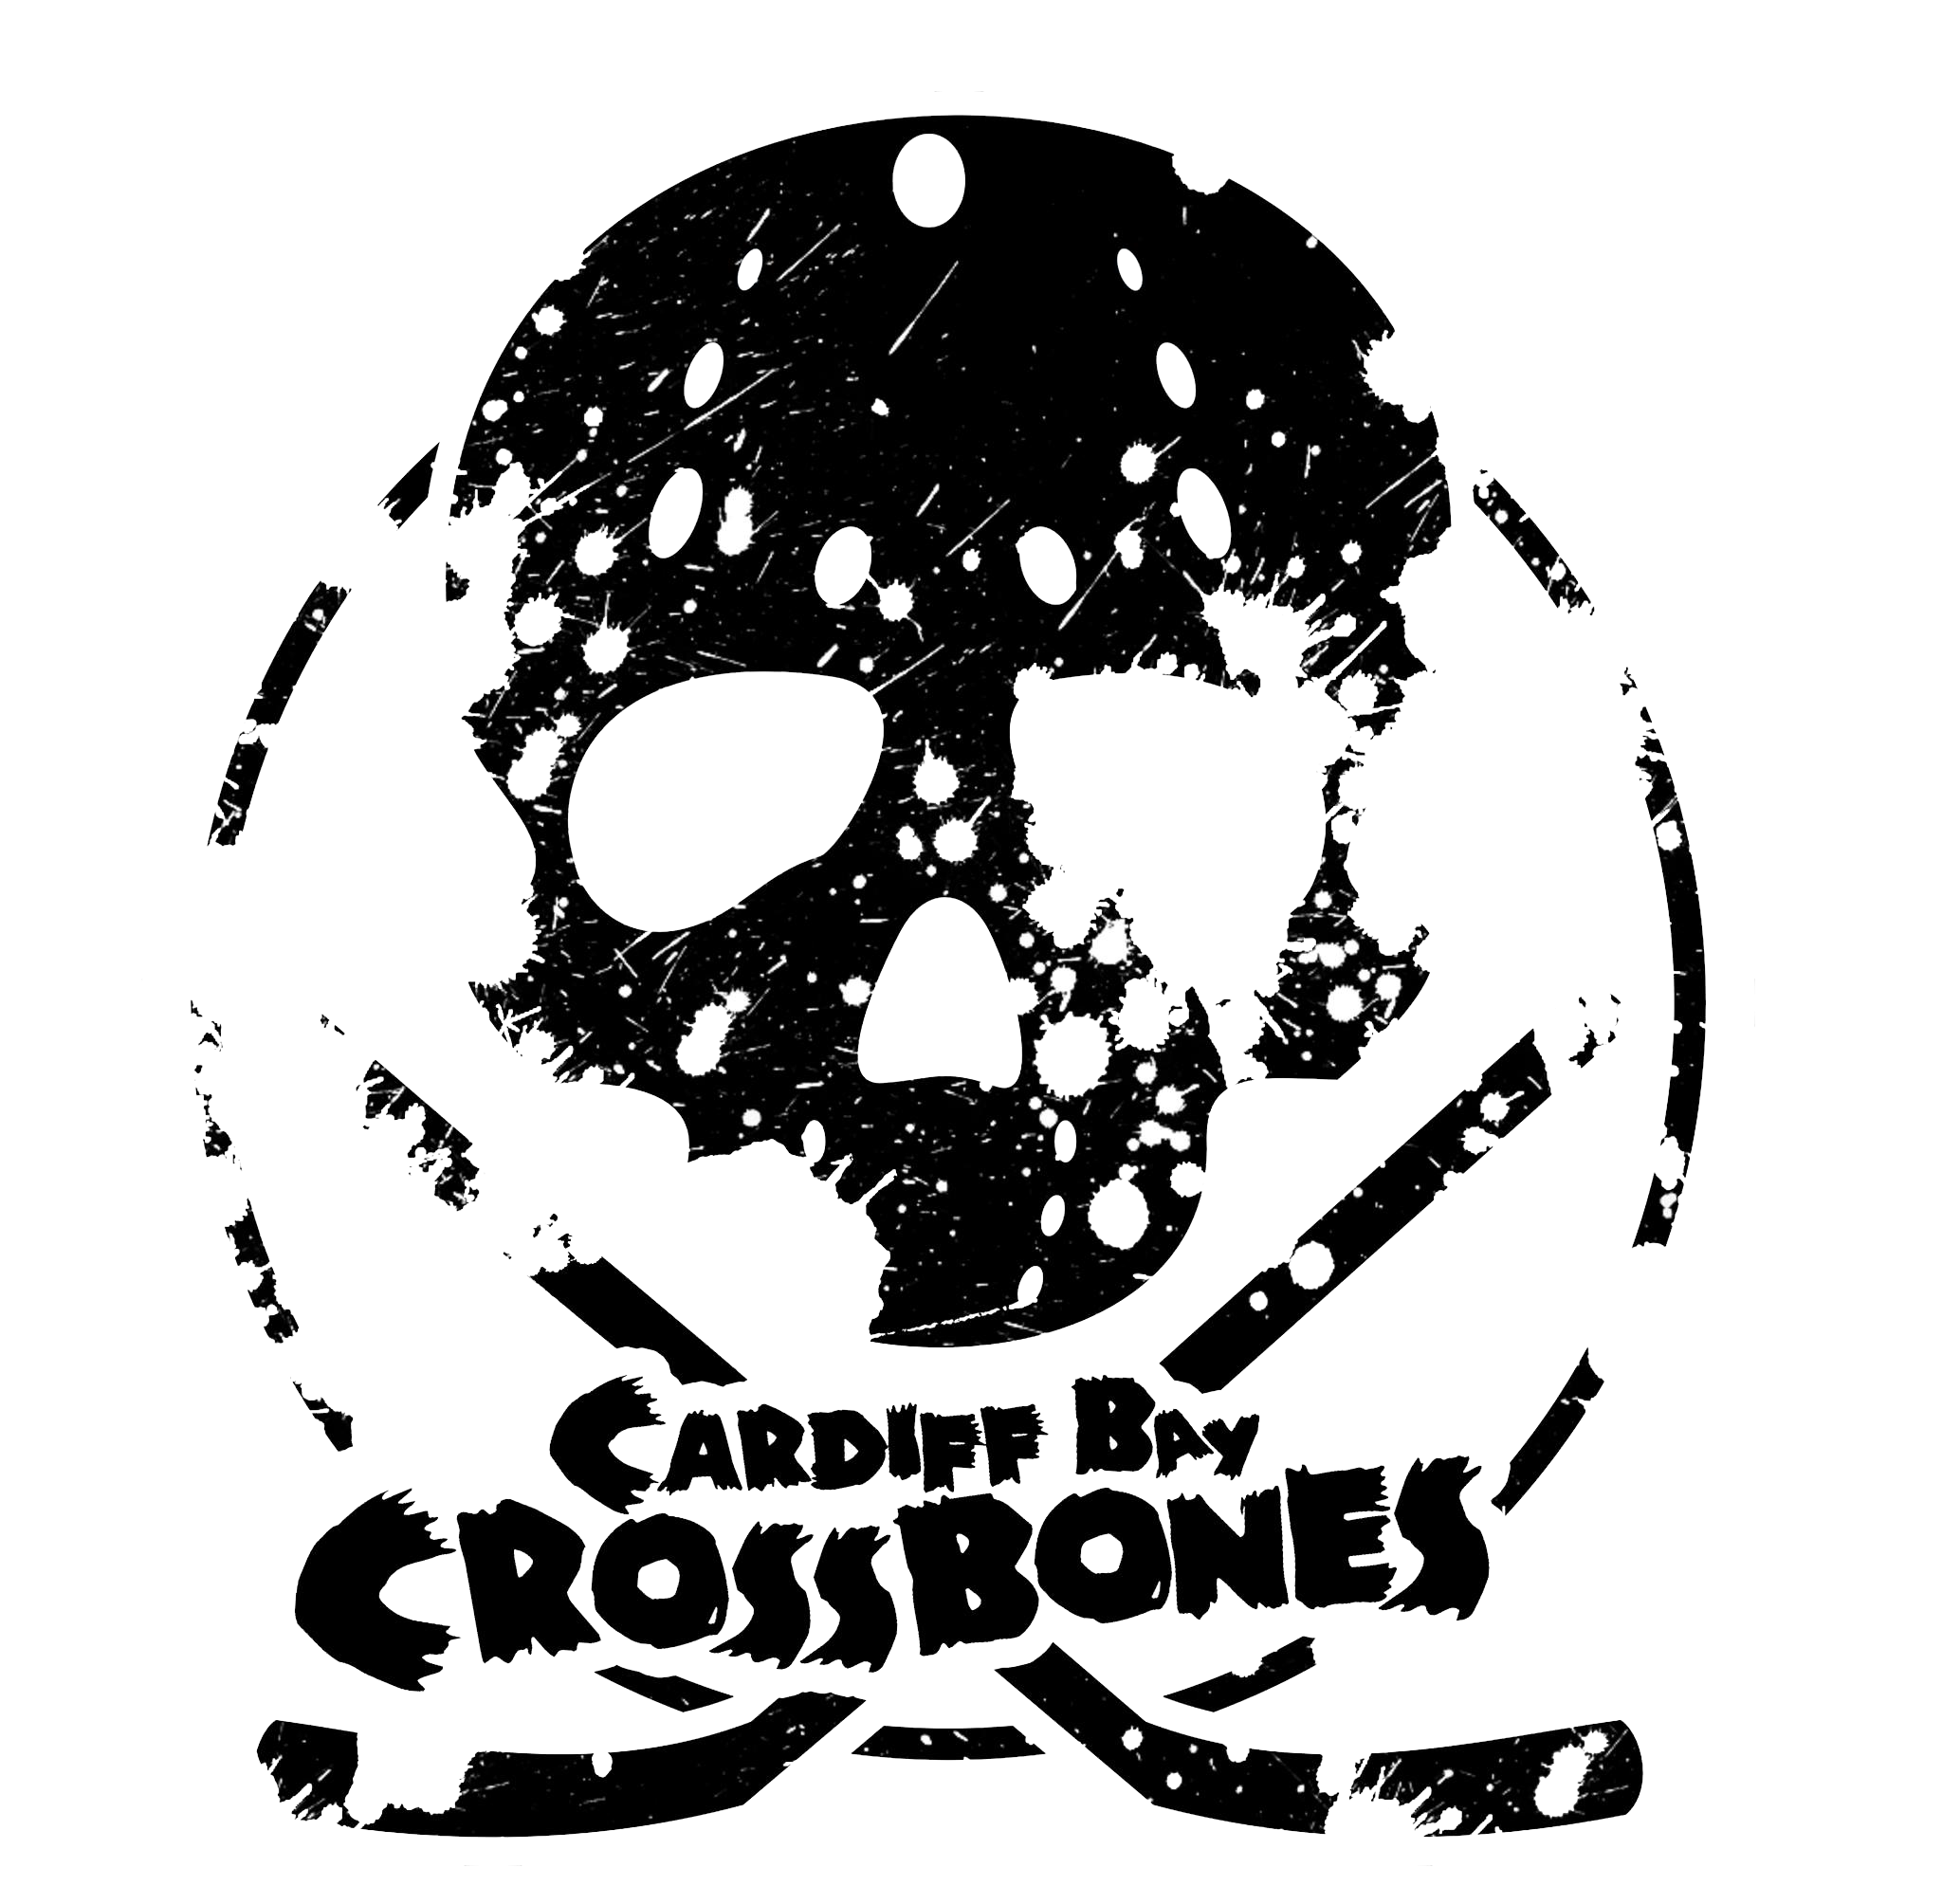 Cardiff Bay Crossbones Inline Hockey Club